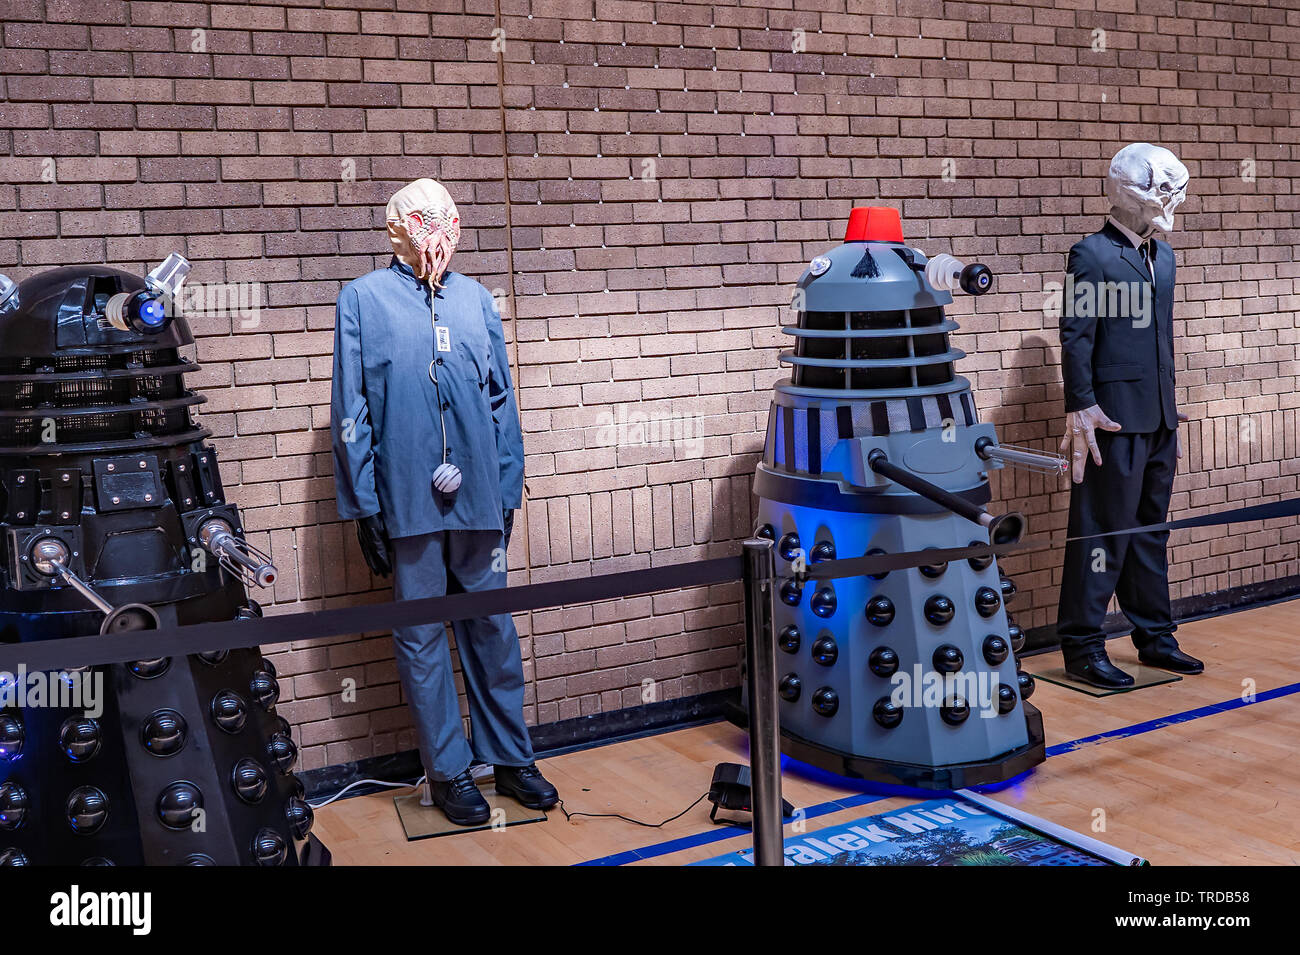 Great Yarmouth Comicon 2019 – Props from the Dr Who TV series on show at the Comicon in the seaside town of Great Yarmouth, Norfolk - Stock Image